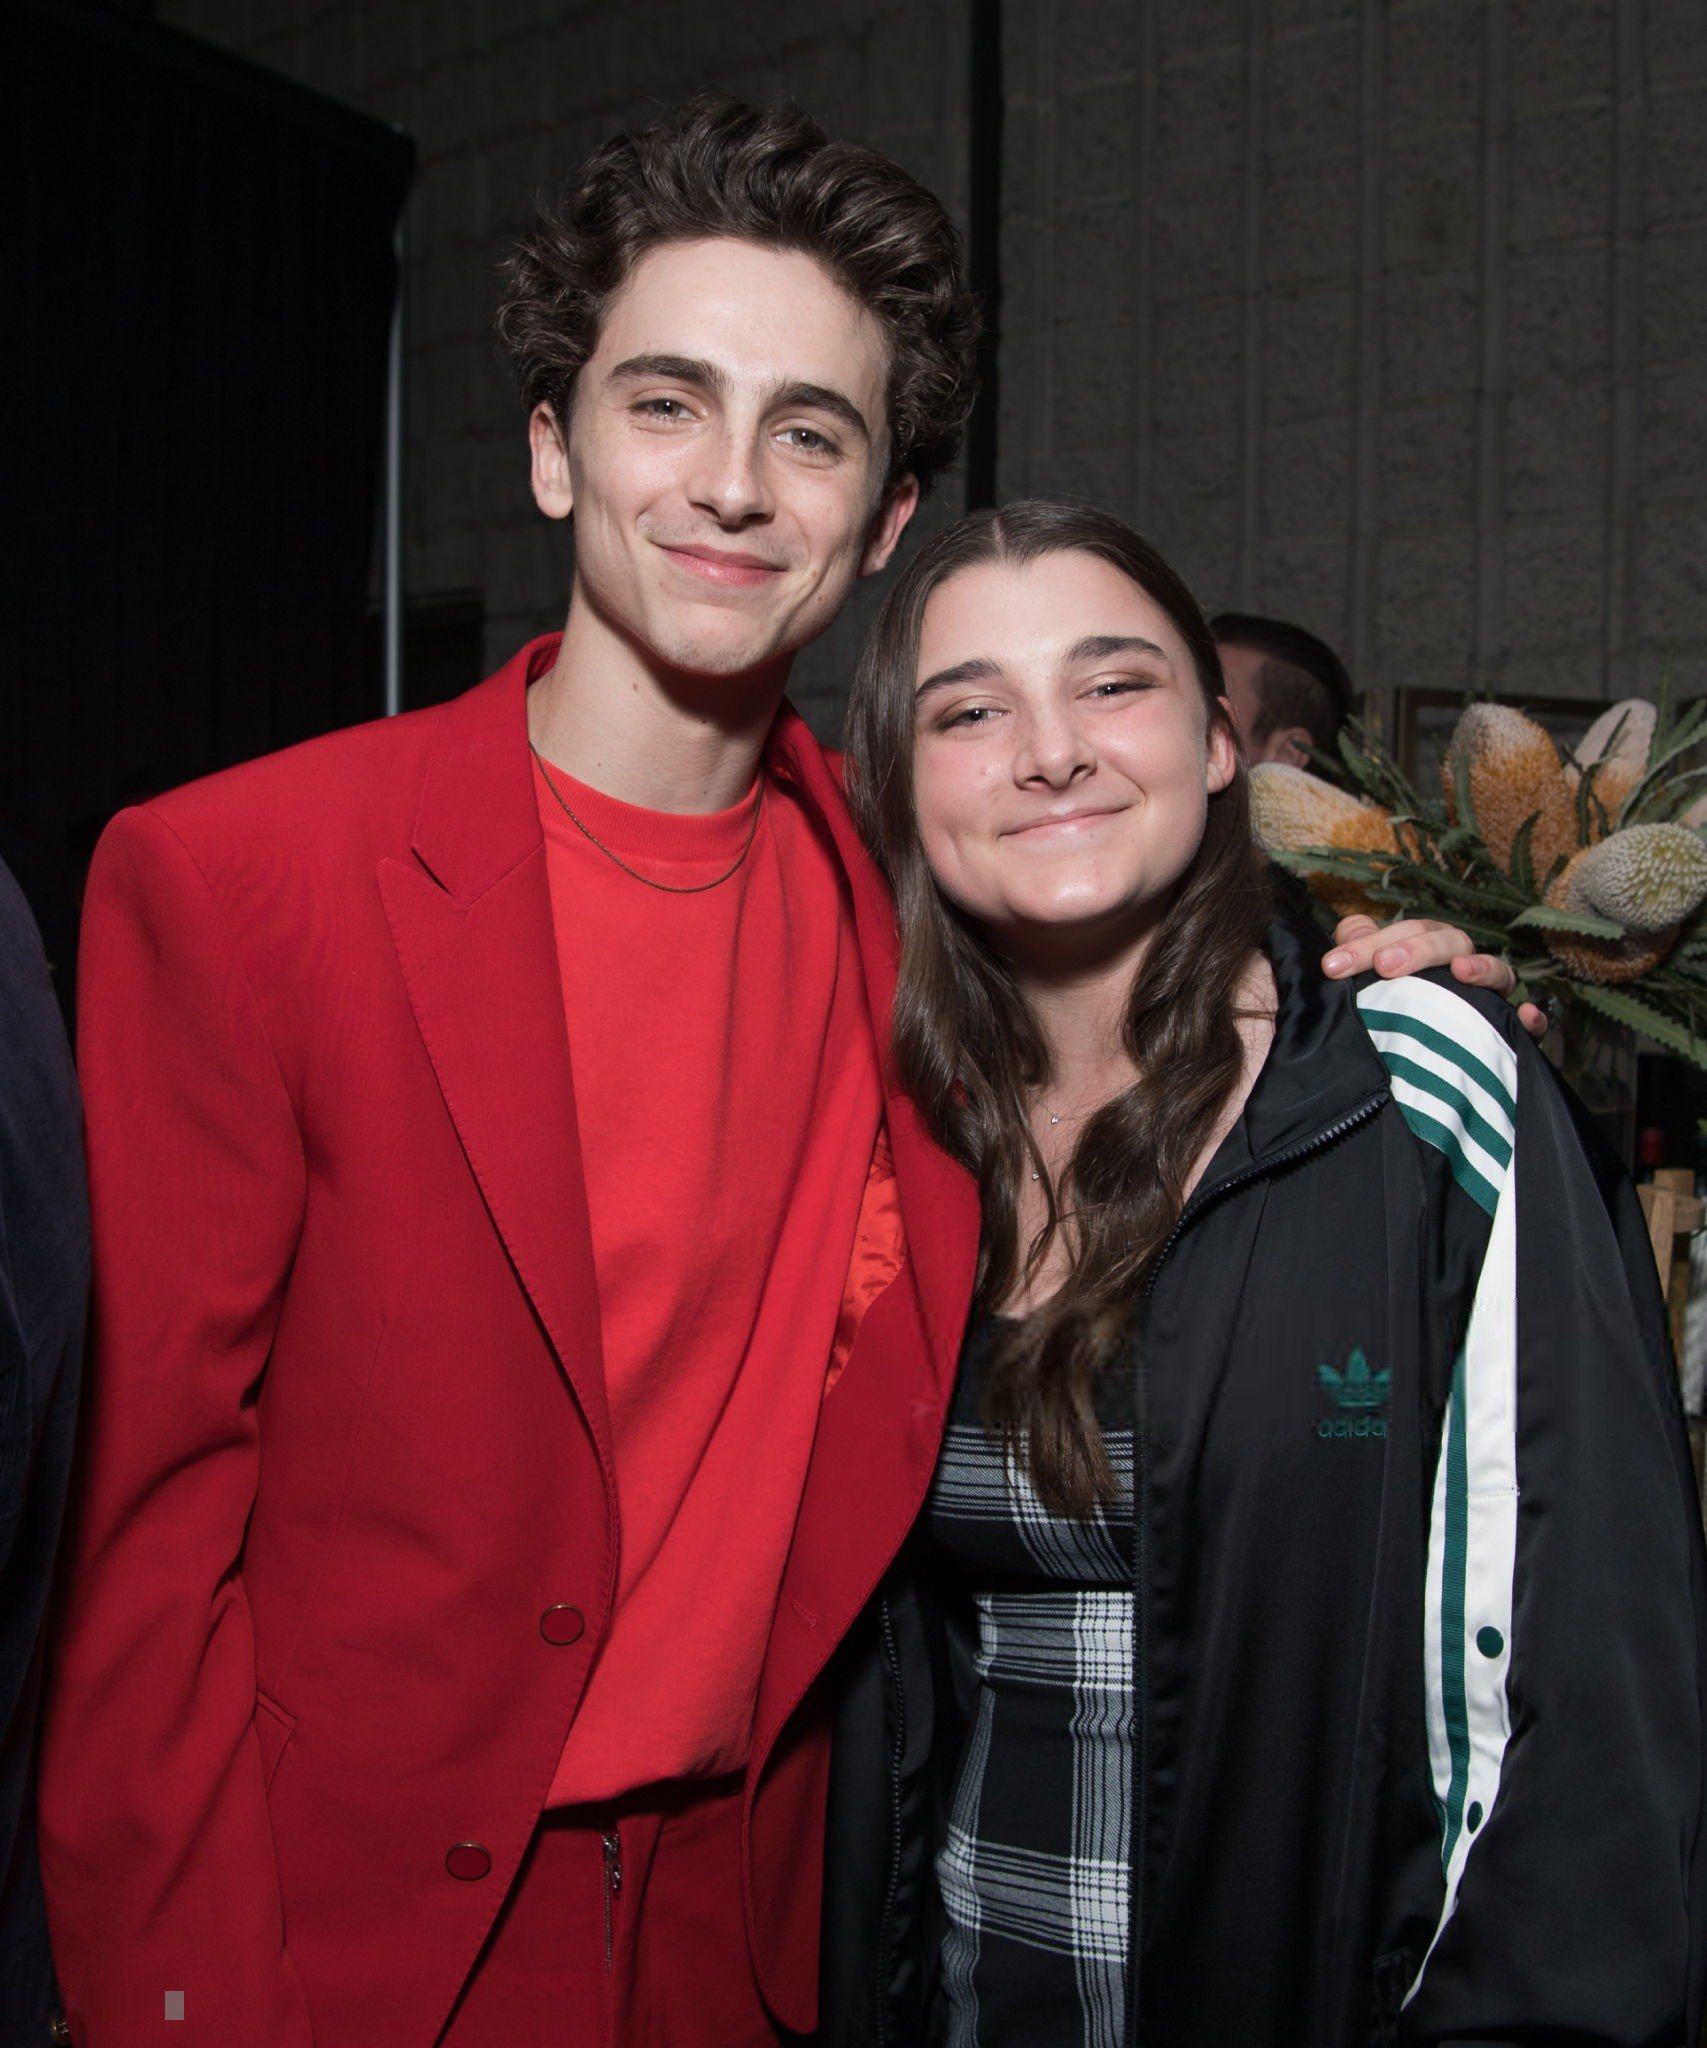 Timothee Chalamet Updates On Twitter Timothee And Elisabeth Anne Carell At The Beautiful Boy Premiere In La Steven johnson carell was born on 16 august 1962, in concord, massachusetts usa into a very religious roman catholic family, of italian (father) and german and polish (mother) descent. timothee and elisabeth anne carell at